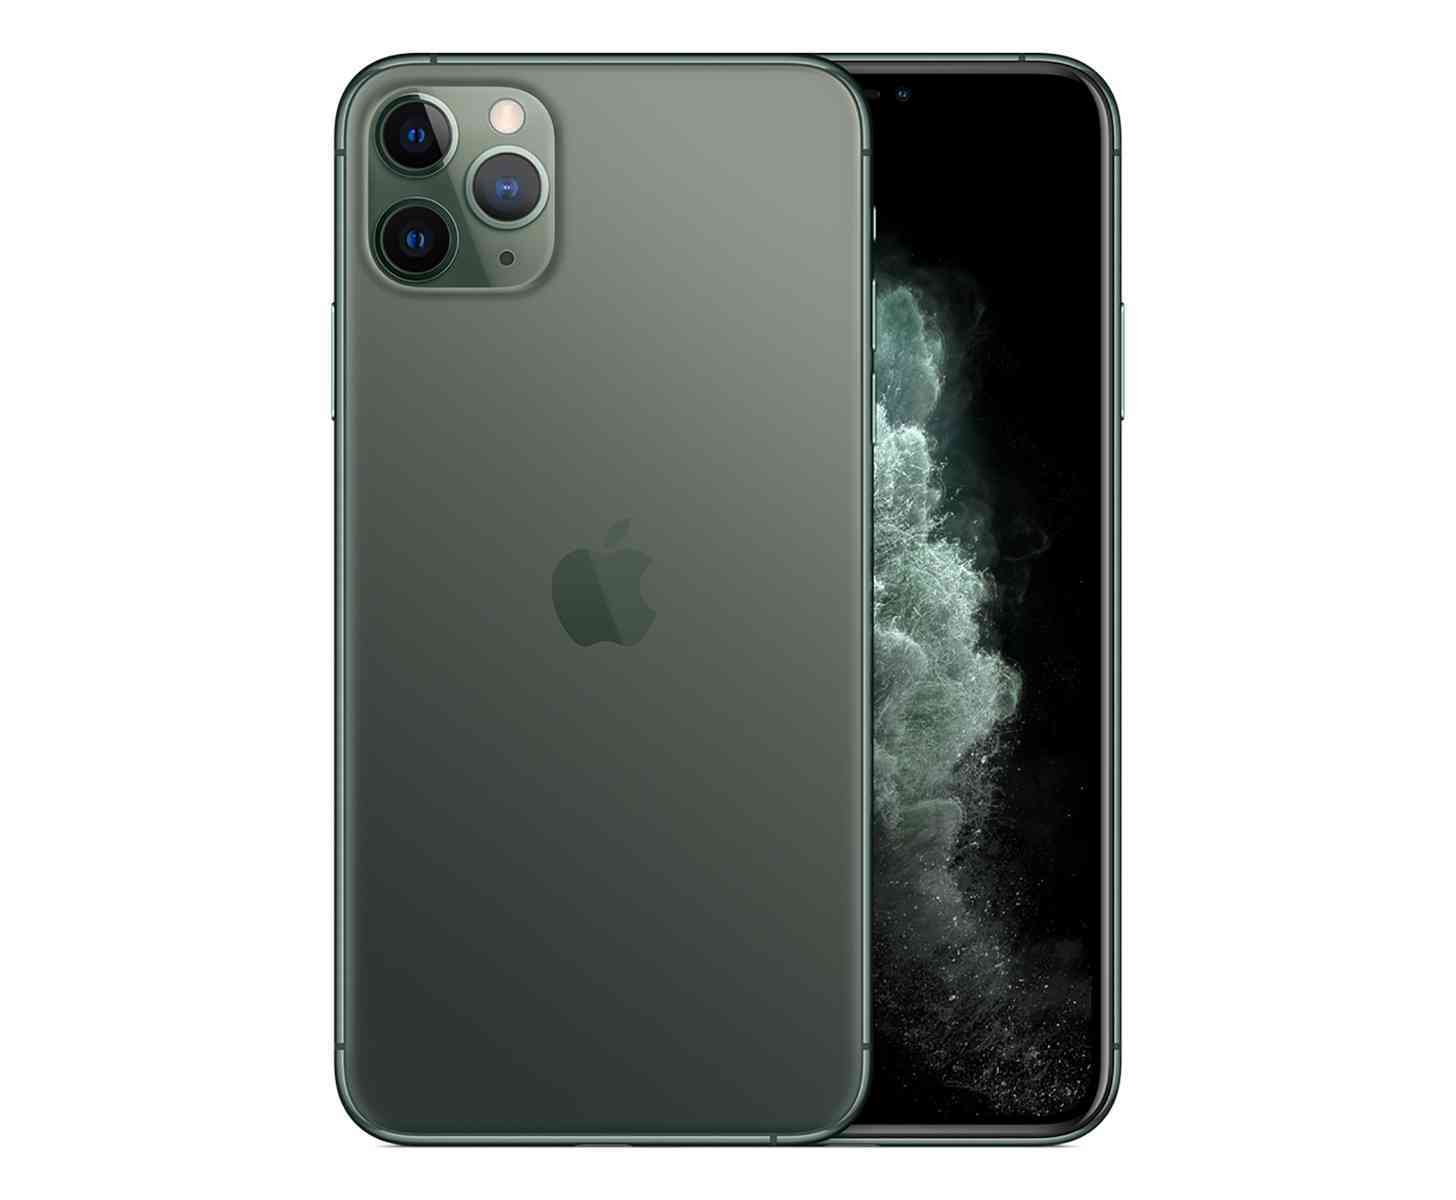 Apple iPhone 11 Pro Max in Midnight Green